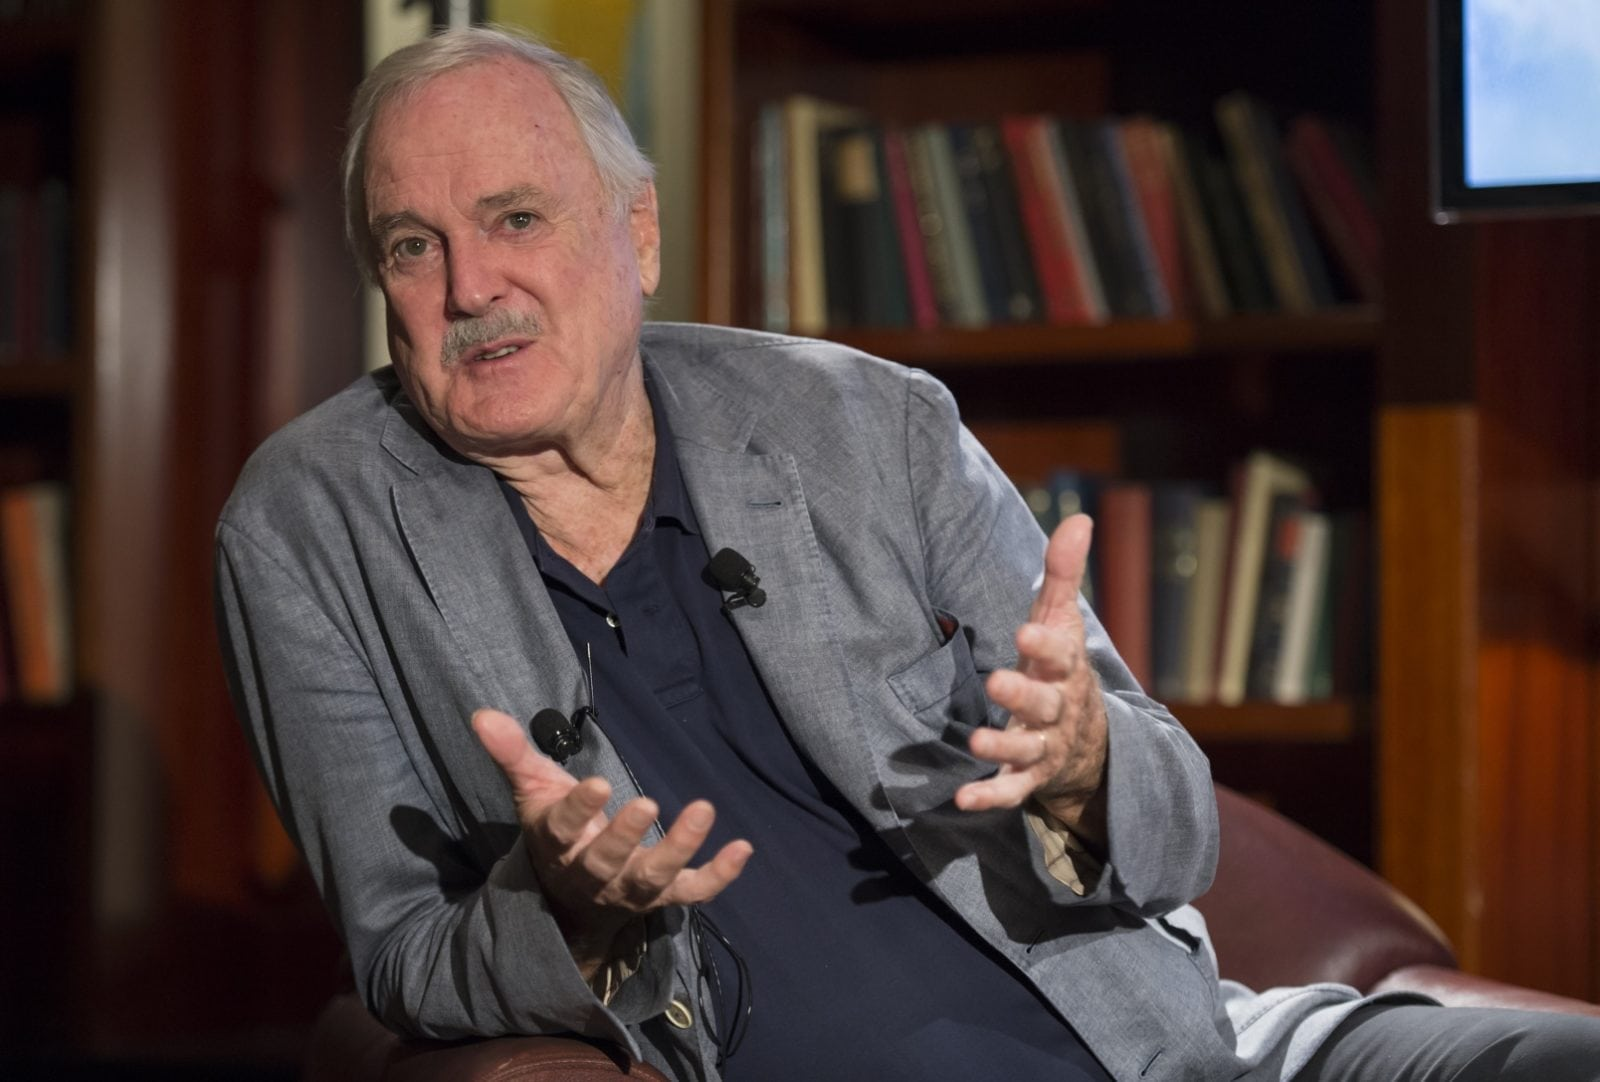 MELBOURNE, AUSTRALIA - MARCH 21: In this handout photo, Fawlty Towers creator and co-writer, John Cleese, introduced the media to Stephen Hall, who will play the role of Basil Fawlty and Blazey Best as Sybil Fawlty in the world premiere tour of Fawlty Towers-Live on stage at Park Hyatt Hotel on March 21, 2016 in Melbourne, Australia. Details of the full cast will be announced soon. (Photo by James Morgan/Getty Images)